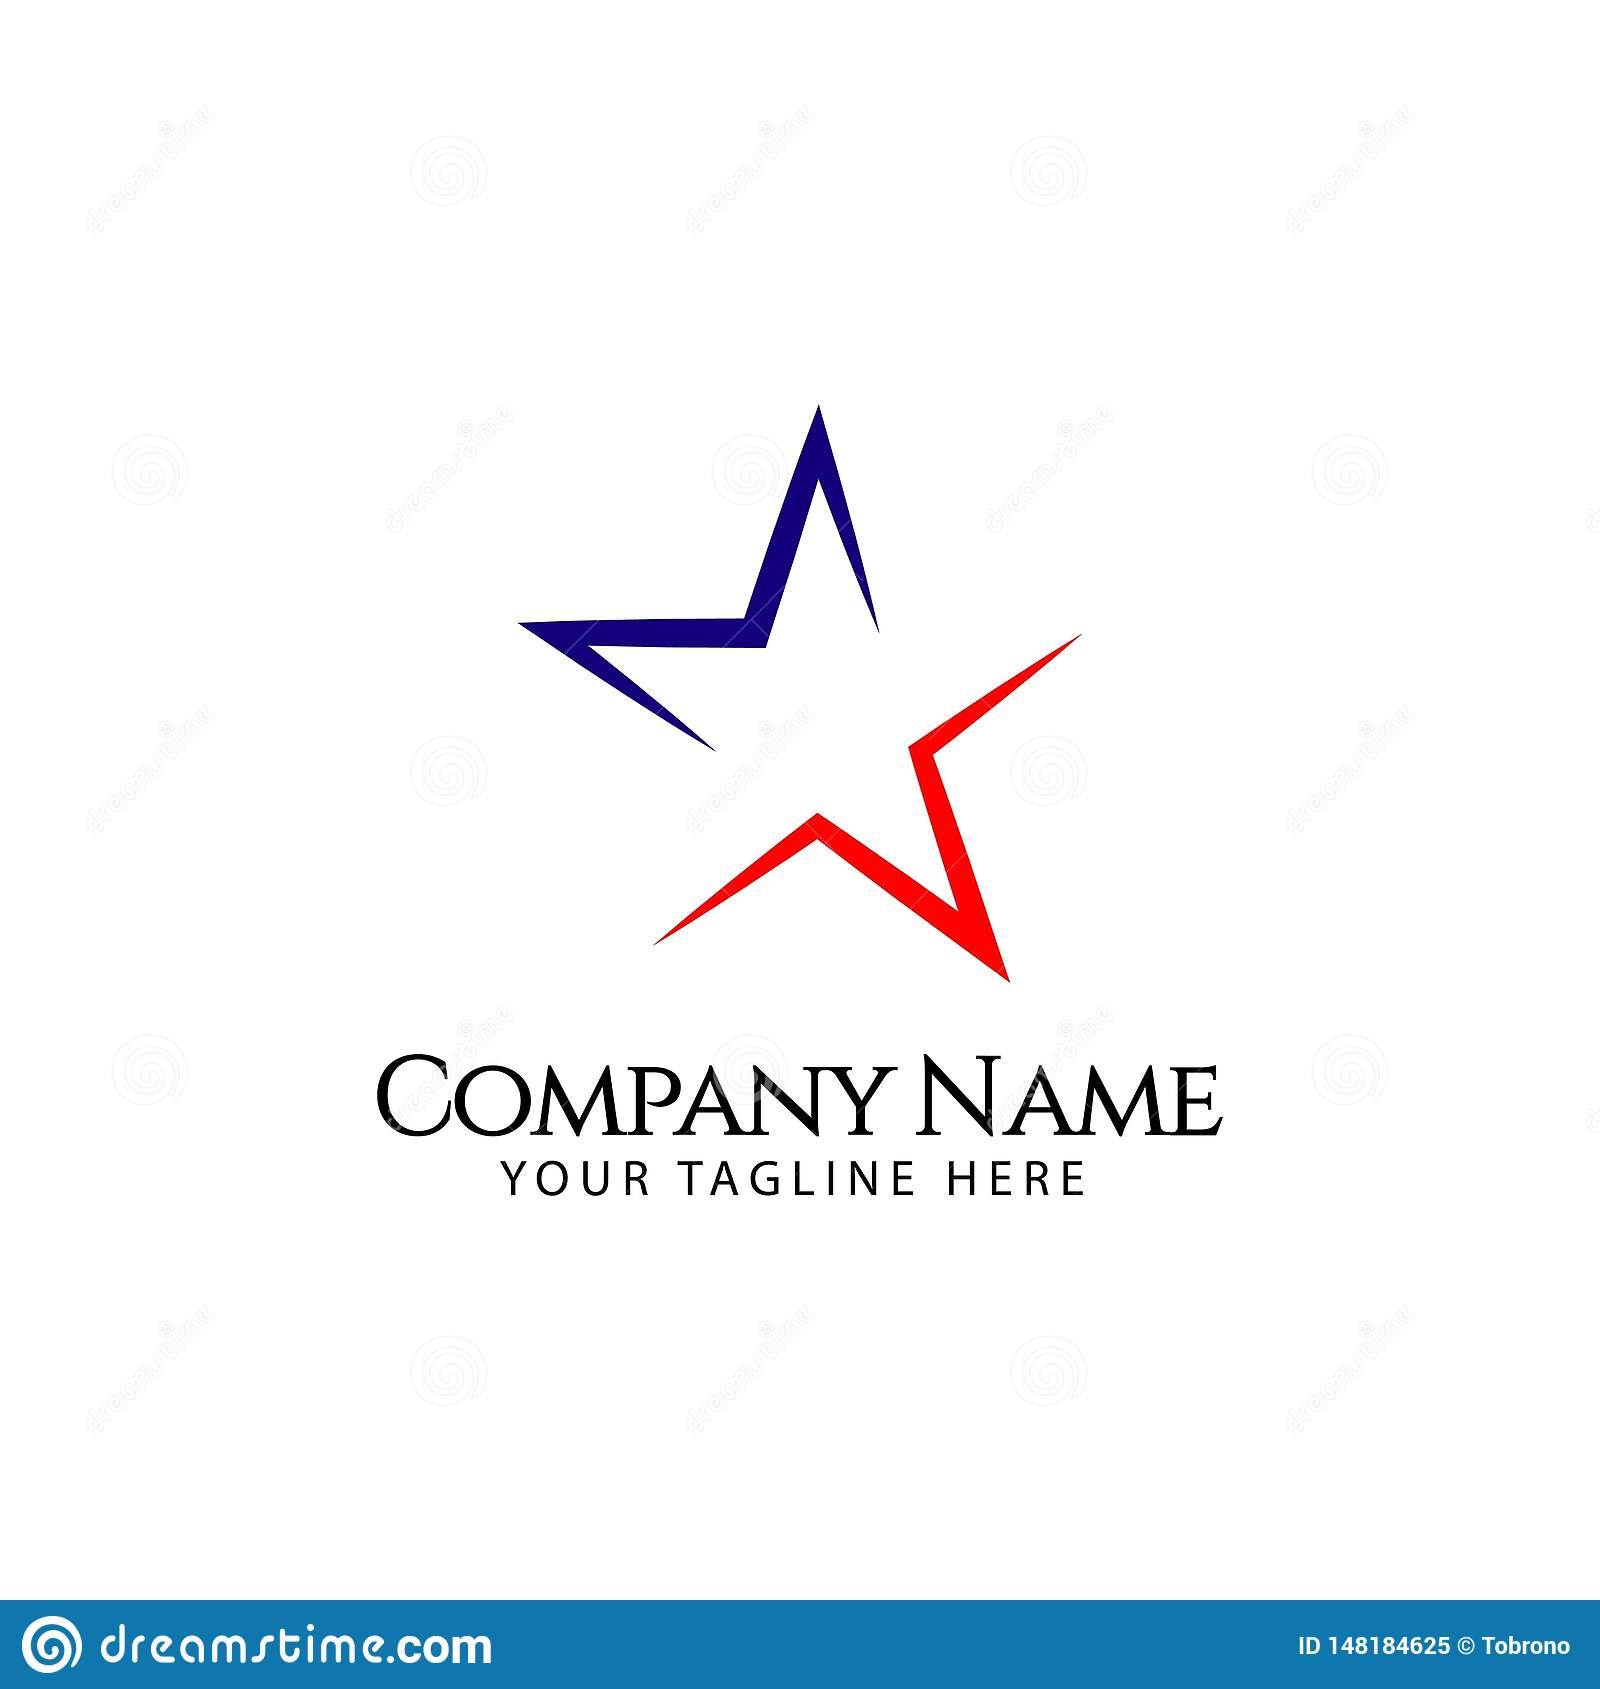 Star Company Logo Vector Template Design Illustration